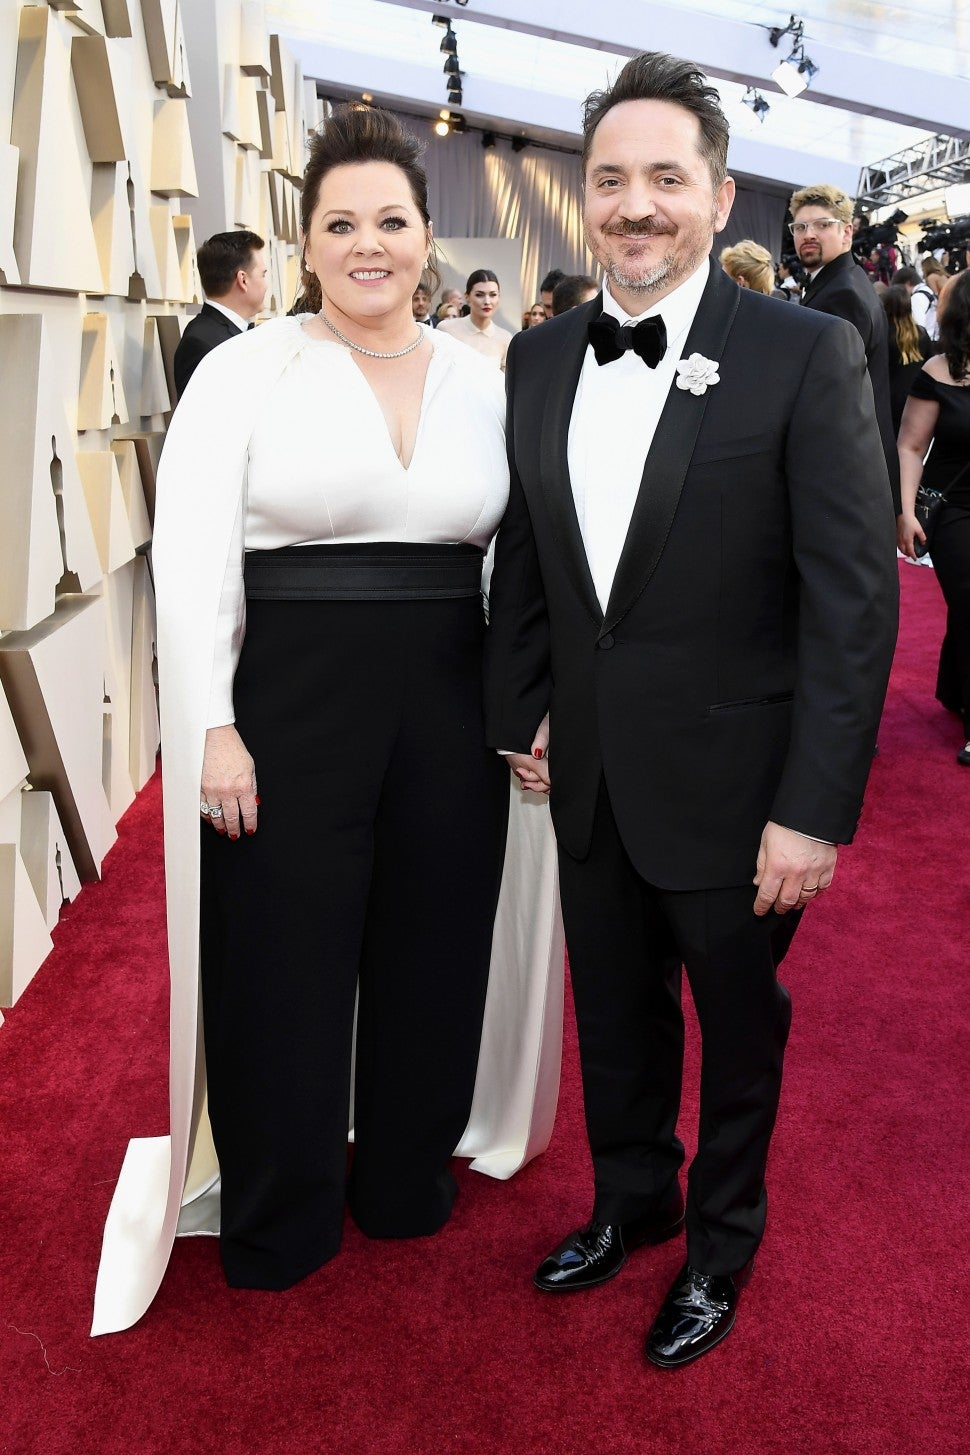 Melissa McCarthy and Ben Falcone at the 91st Annual Academy Awards